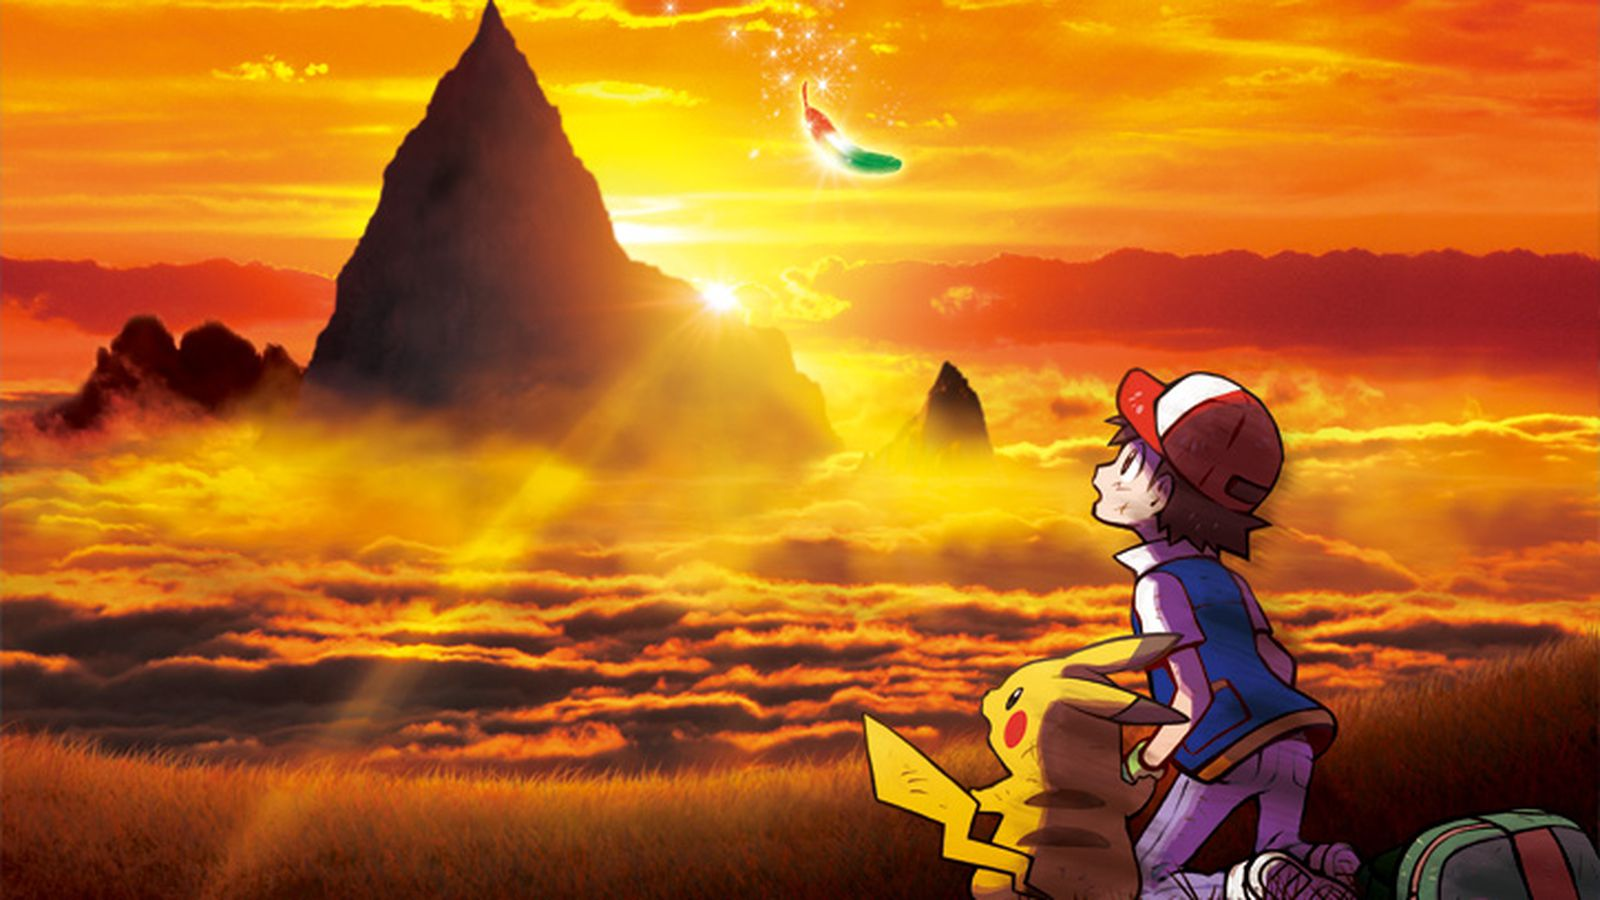 Nintnedo Fall Wallpapers Pok 233 Mon Returns To Theaters This Fall With Nostalgia Fest